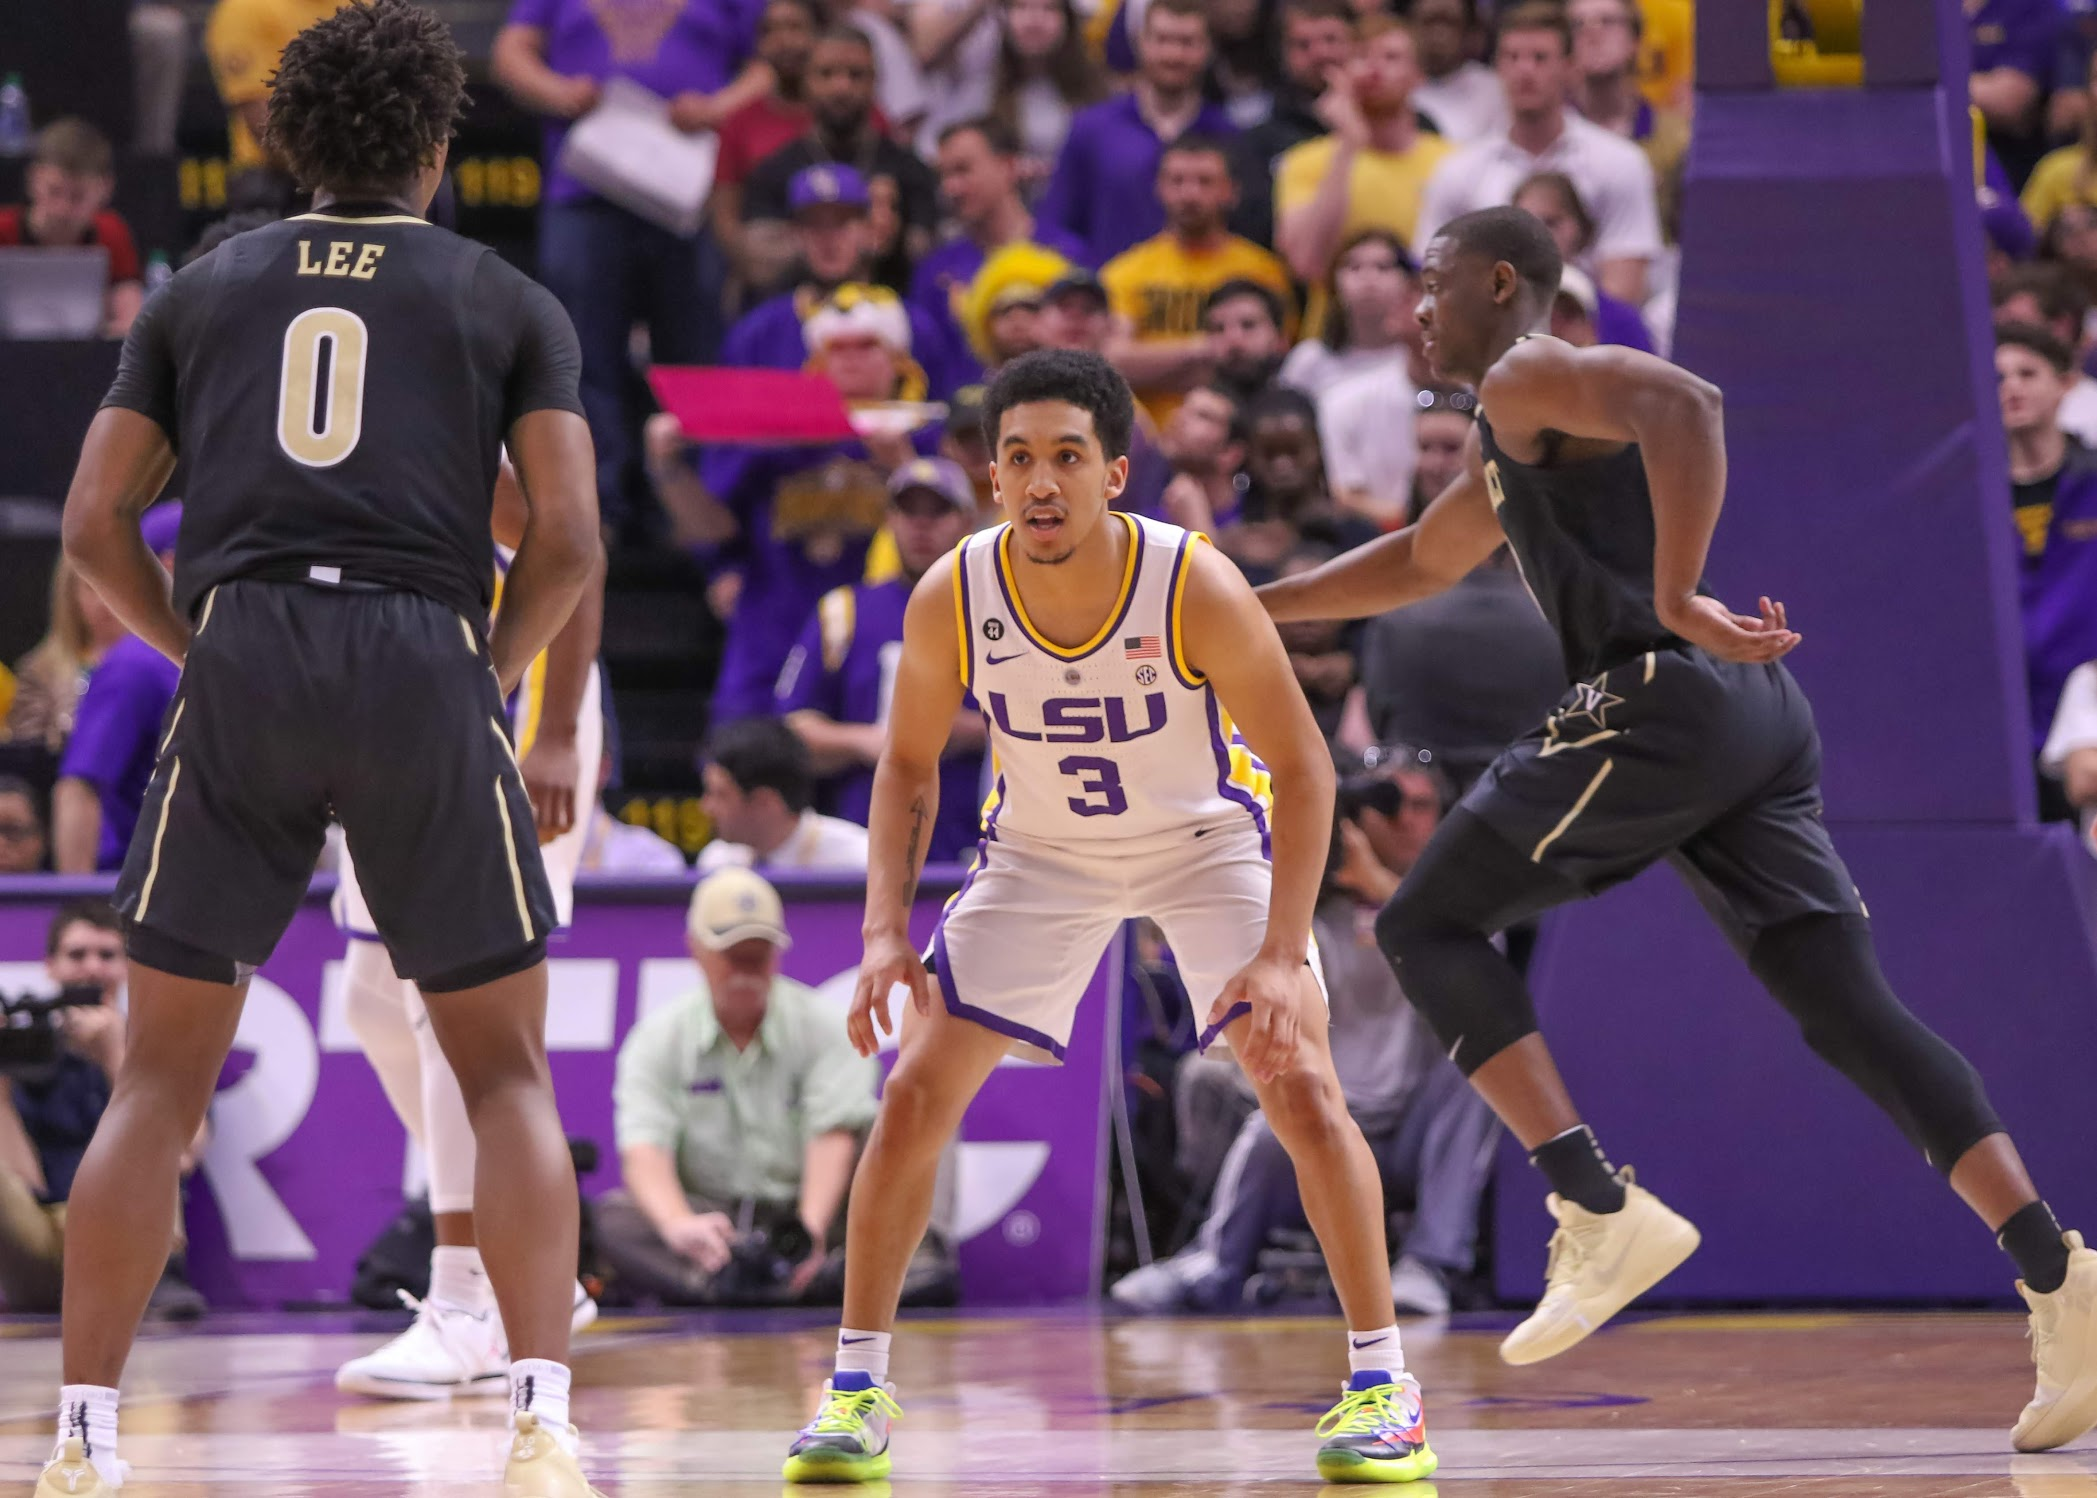 LSU up one spot to No. 9 in final AP Top 25